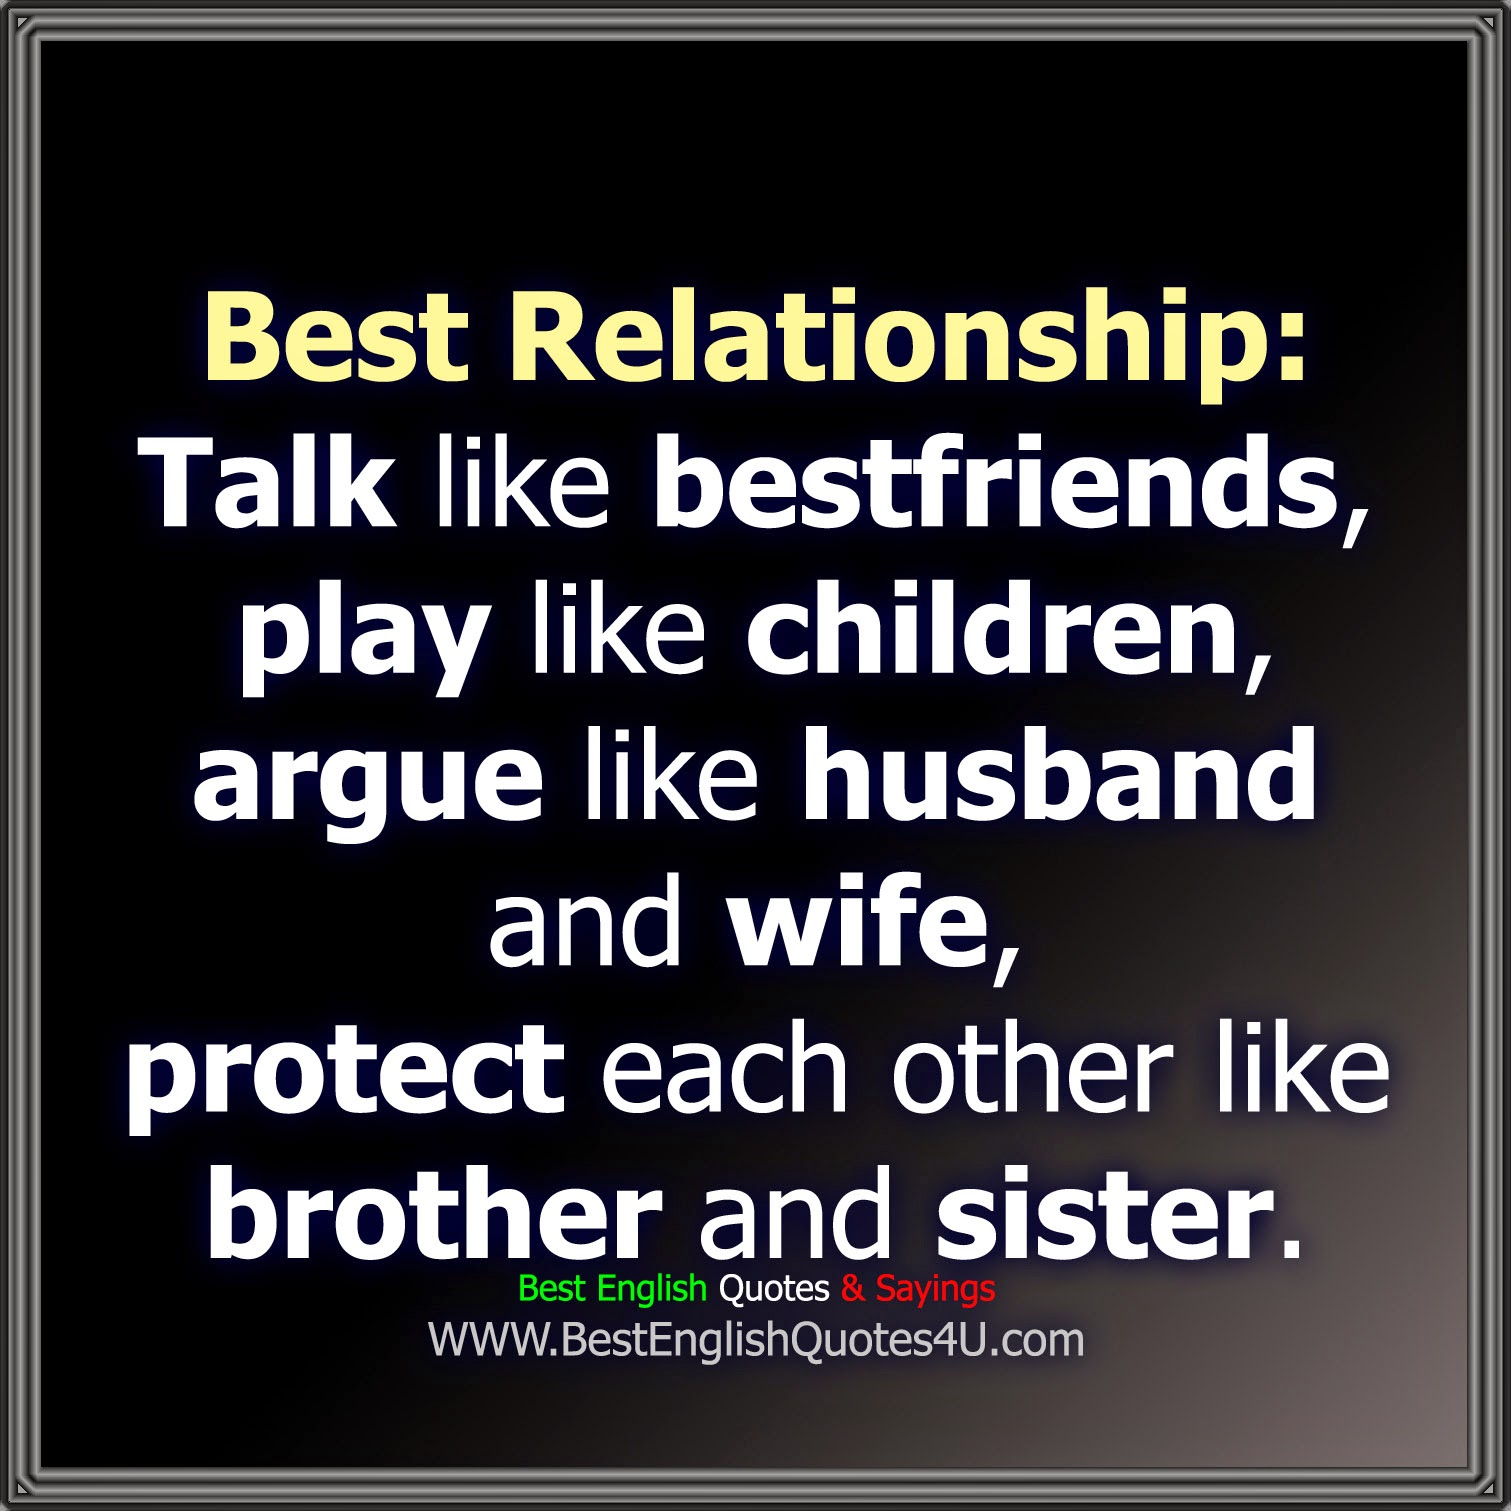 Husband Wife Quotes In English: Best English Quotes & Sayings